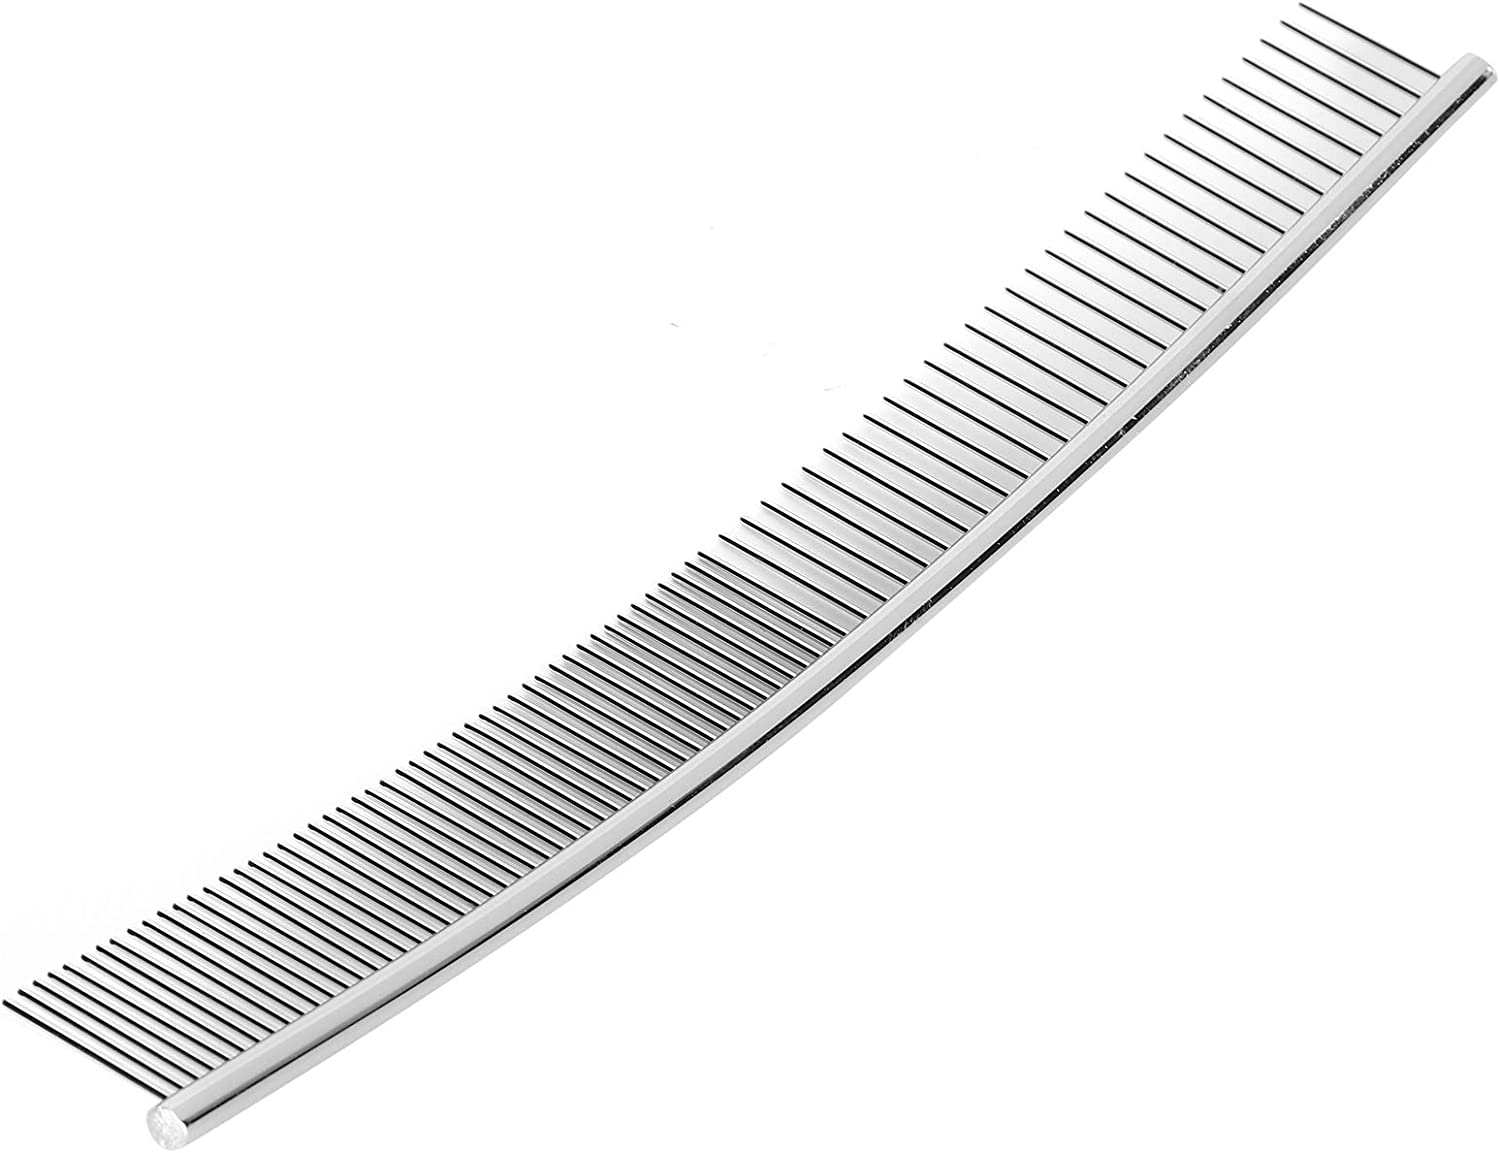 Half thin and half dense, curved comb Pet Grooming Opening Knot Comb Stainless Steel Rust‑Resistent Steady for Pets Dogs Knot Comb AMONIDA Dogs Curved Comb